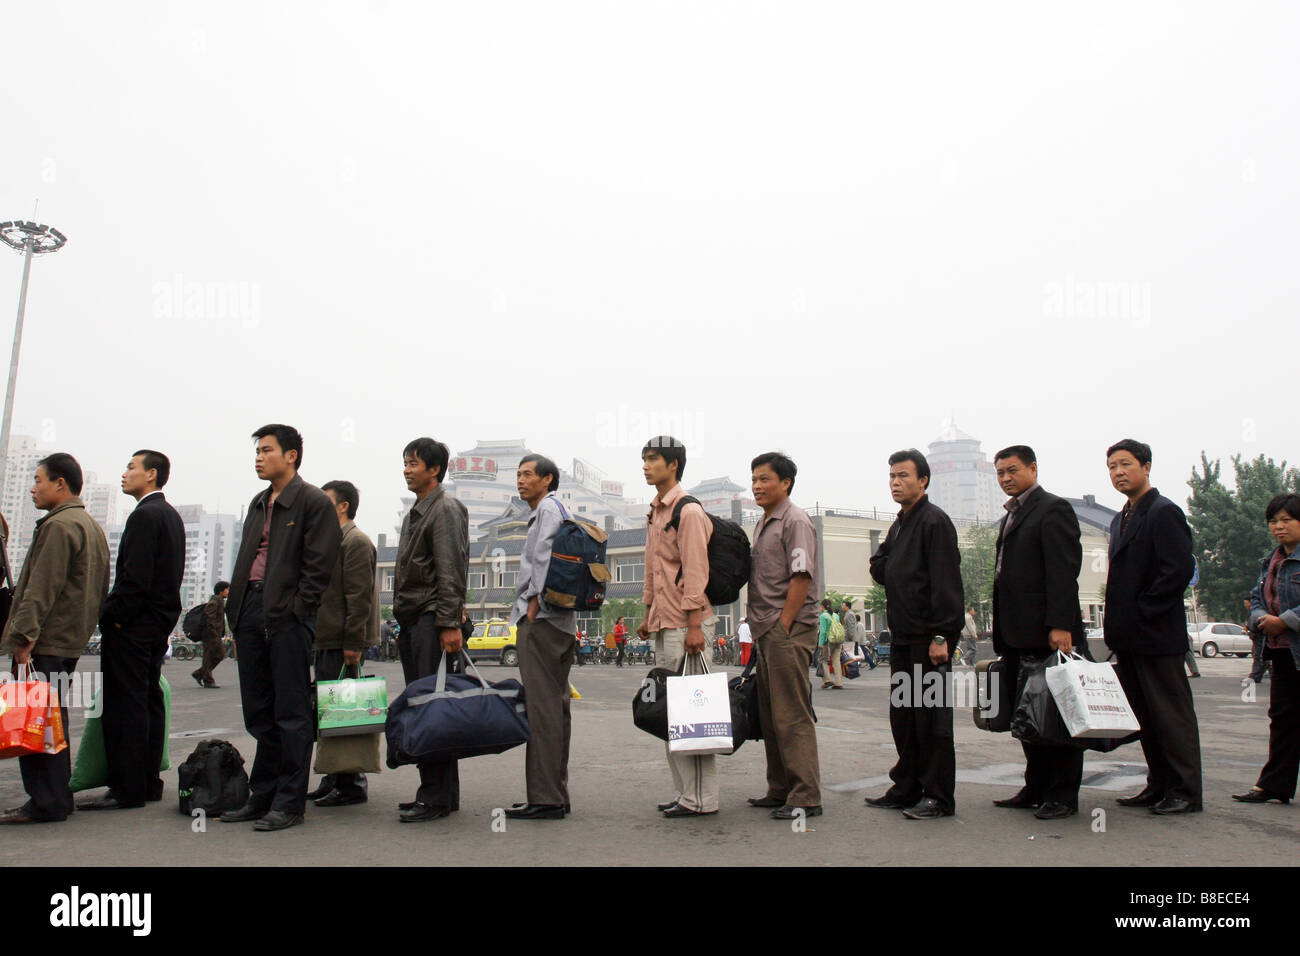 Forming a line / queue waiting for a bus in Beijing, China - Stock Image